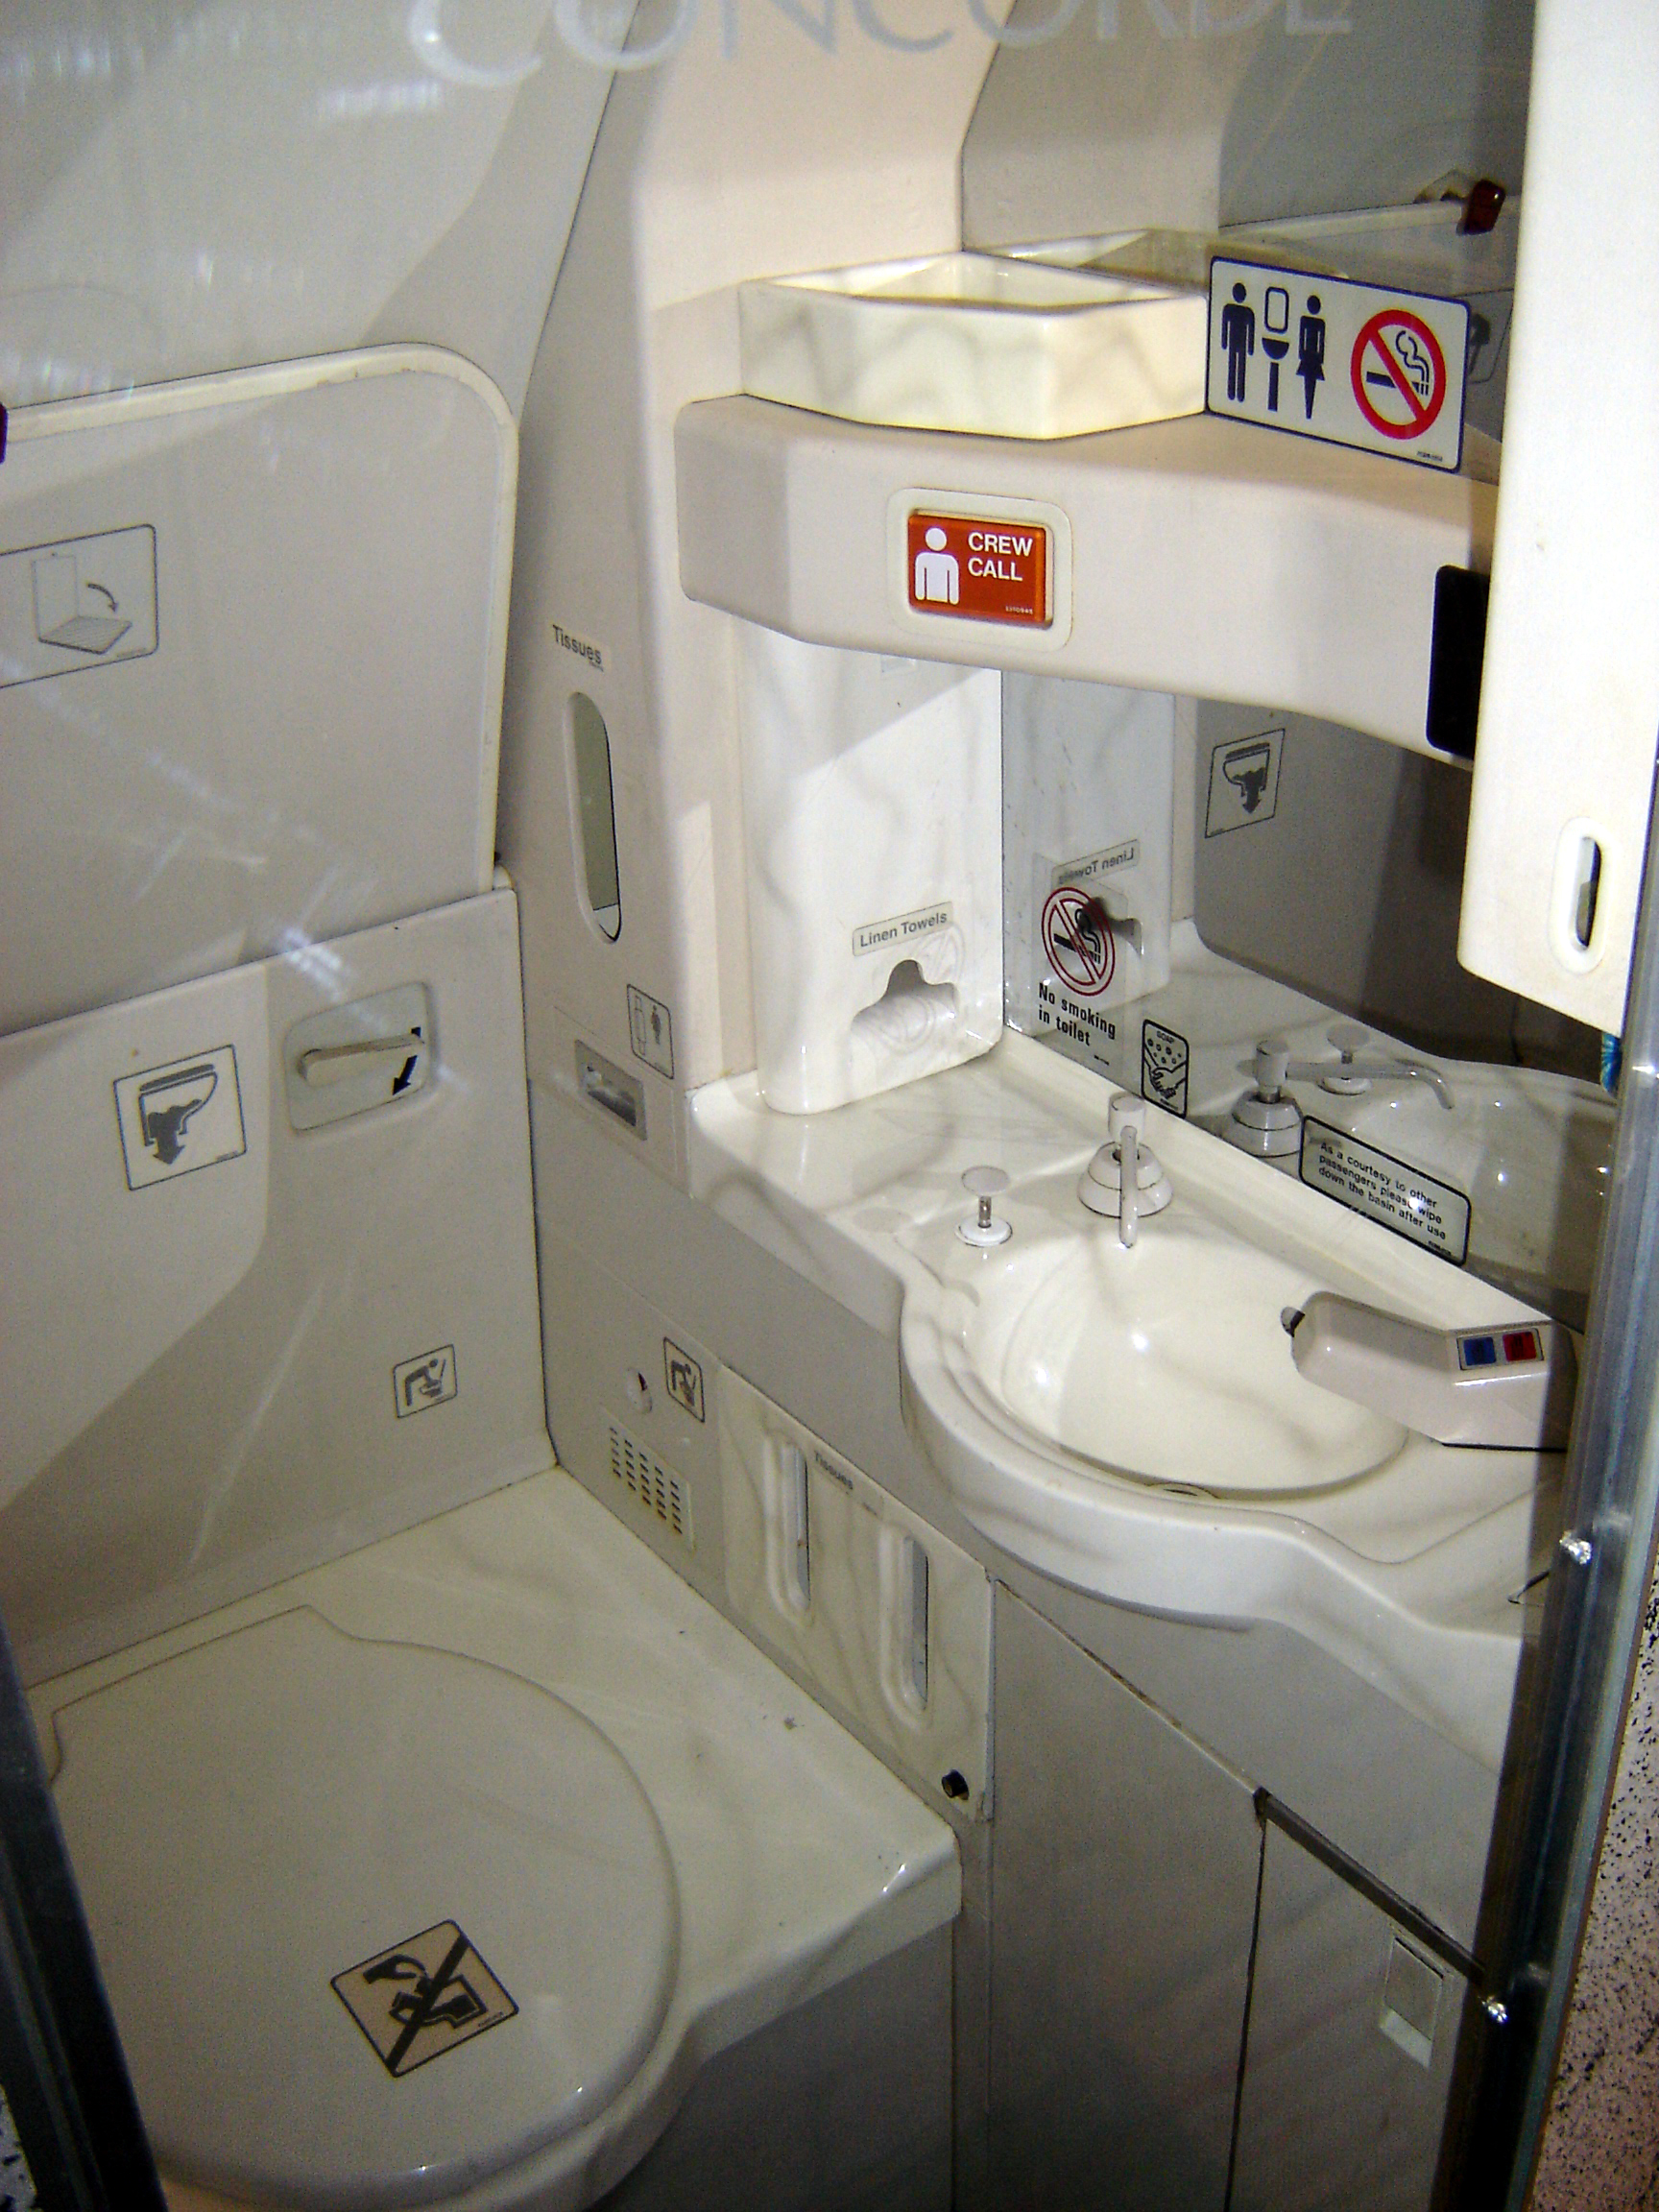 Airplane bathrooms make you old. whathappenedtoguentherlause #634A3C 1728x2304 Banheiro Avião Tam